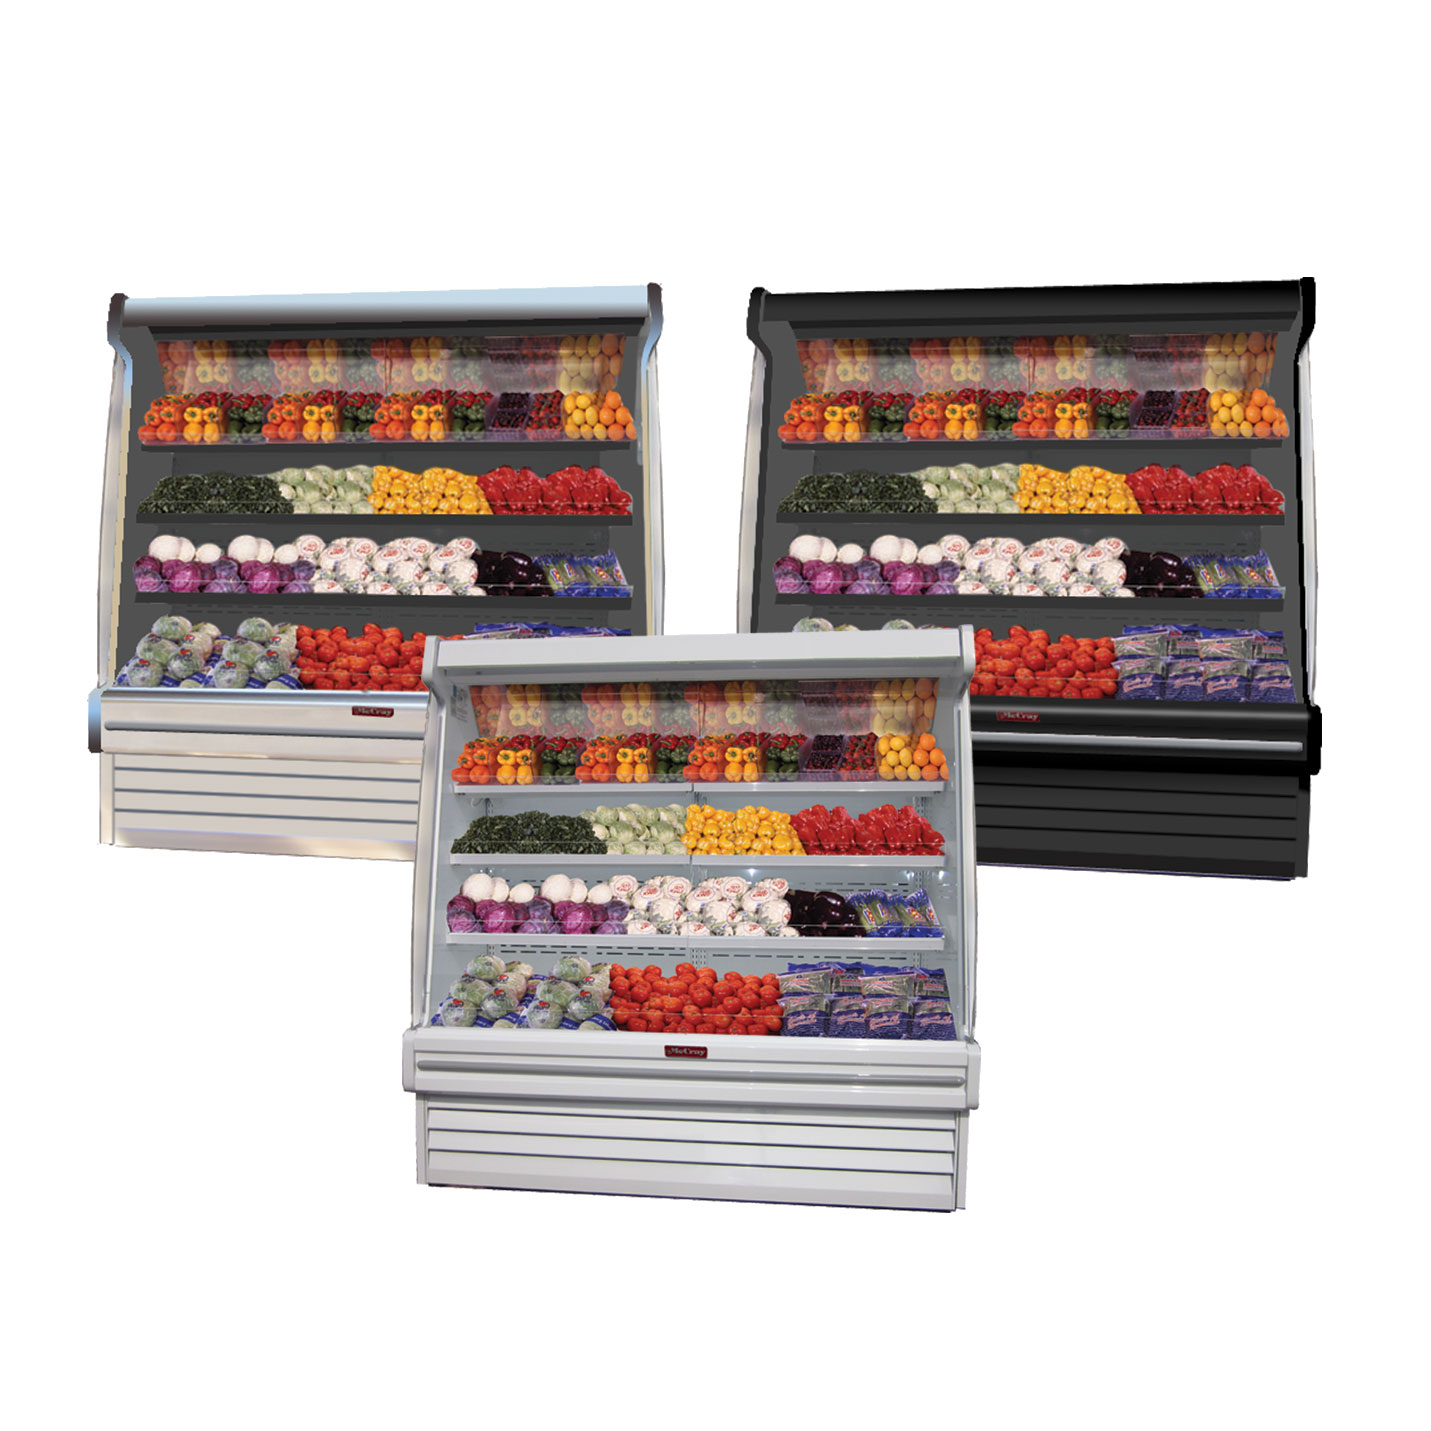 Howard-McCray R-OP35E-4S-S-LED display case, produce